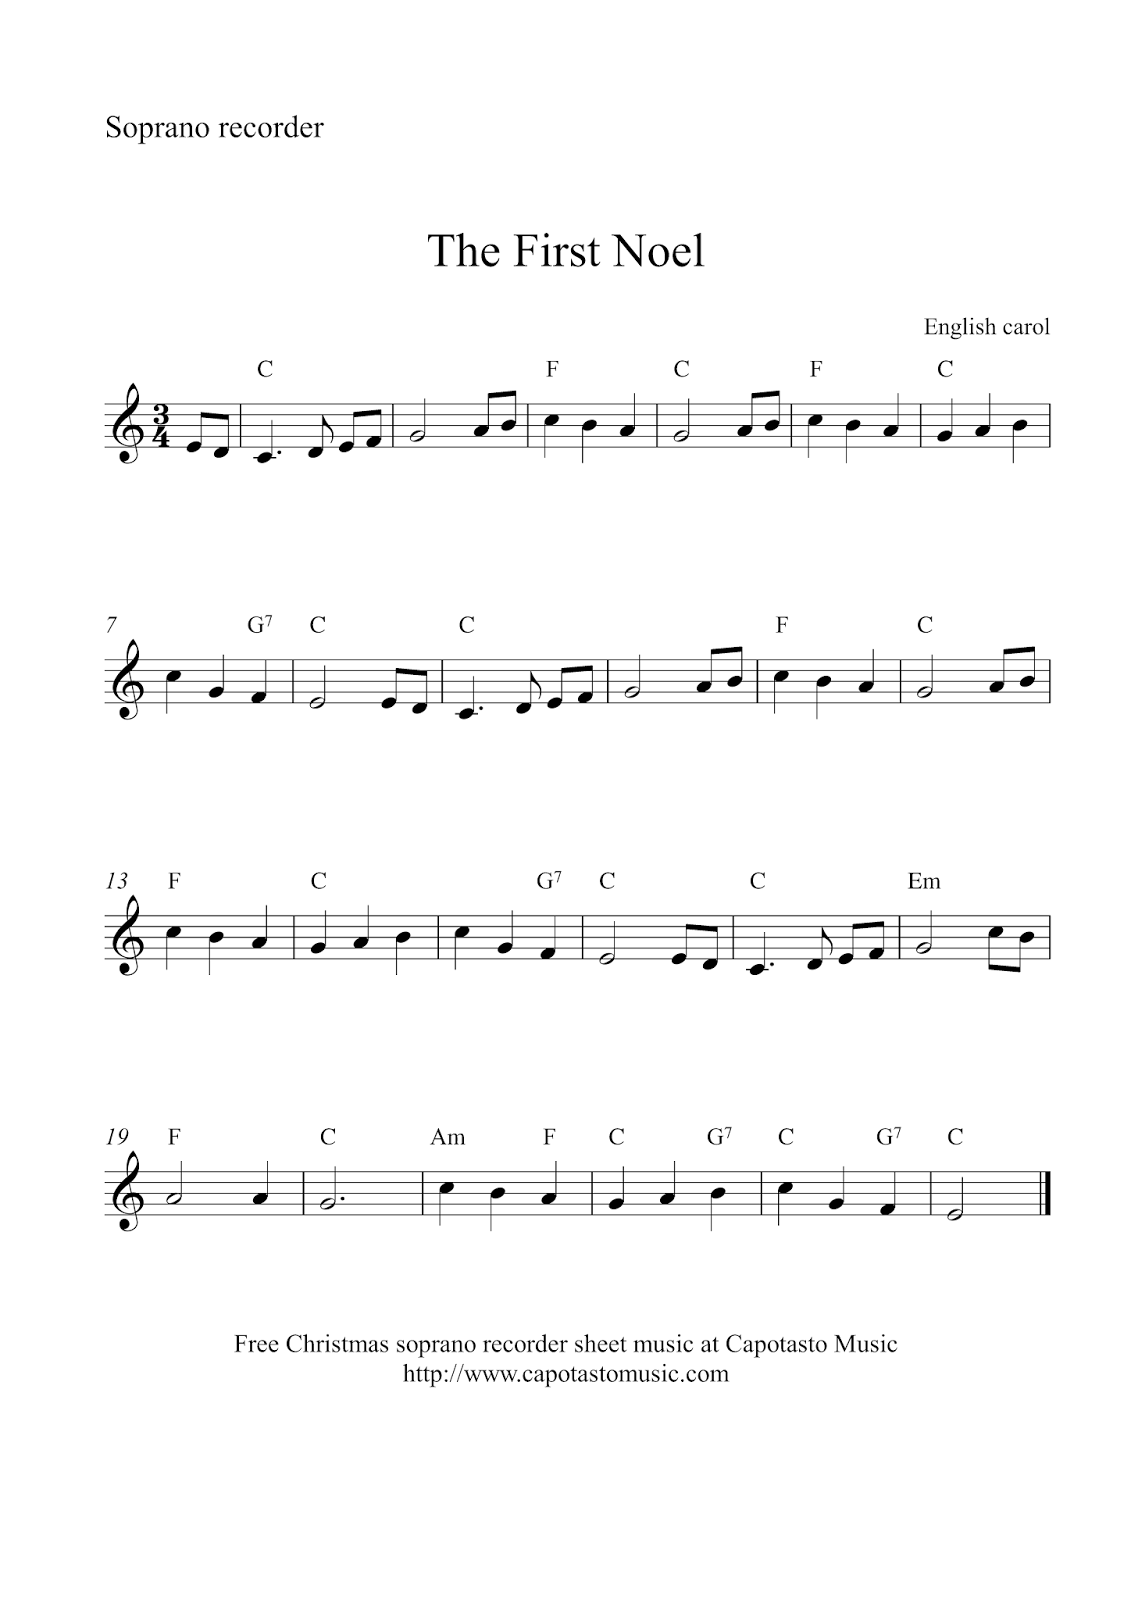 A Dream Is A Wish Your Heart Makes Flute Sheet Music The First Noel Soprano Recorder Png 1131 1600 Violin Sheet Music Beginner Violin Sheet Music Christmas Sheet Music